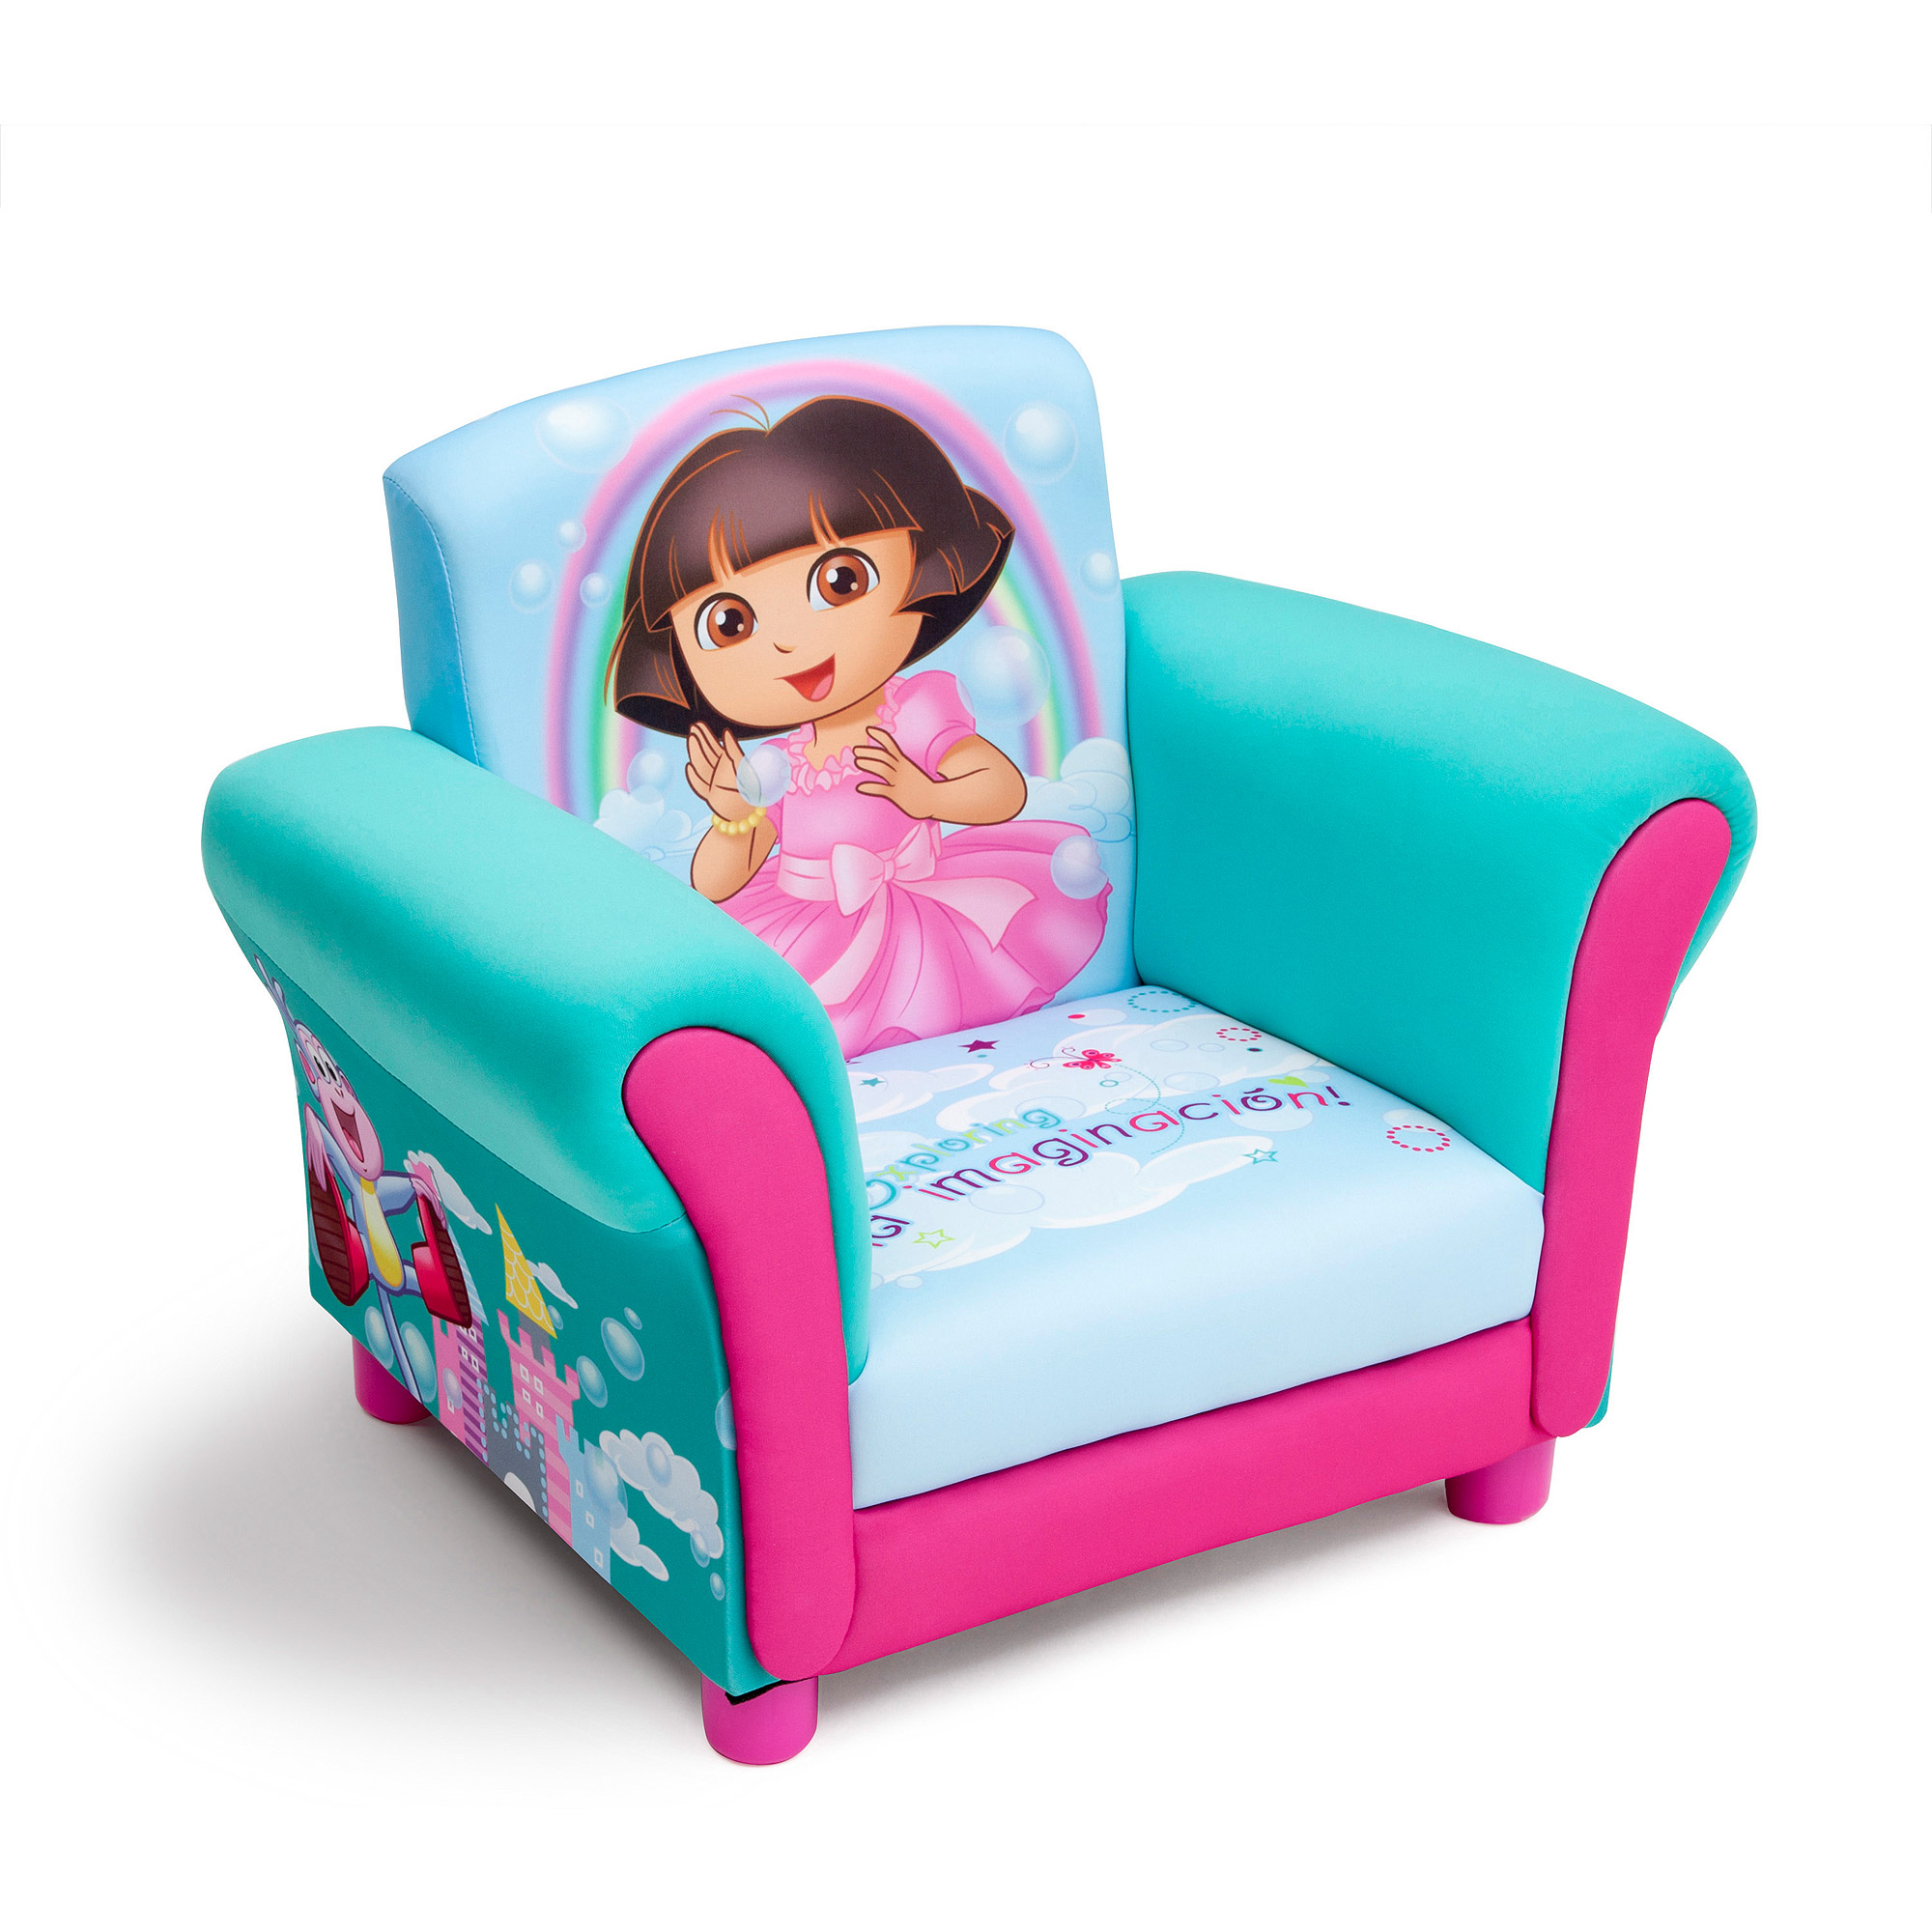 Toddler Chairs Upholstered Details About New Dora The Explorer Kids Upholstered Chair Children Toddler Plush Seat Sofa